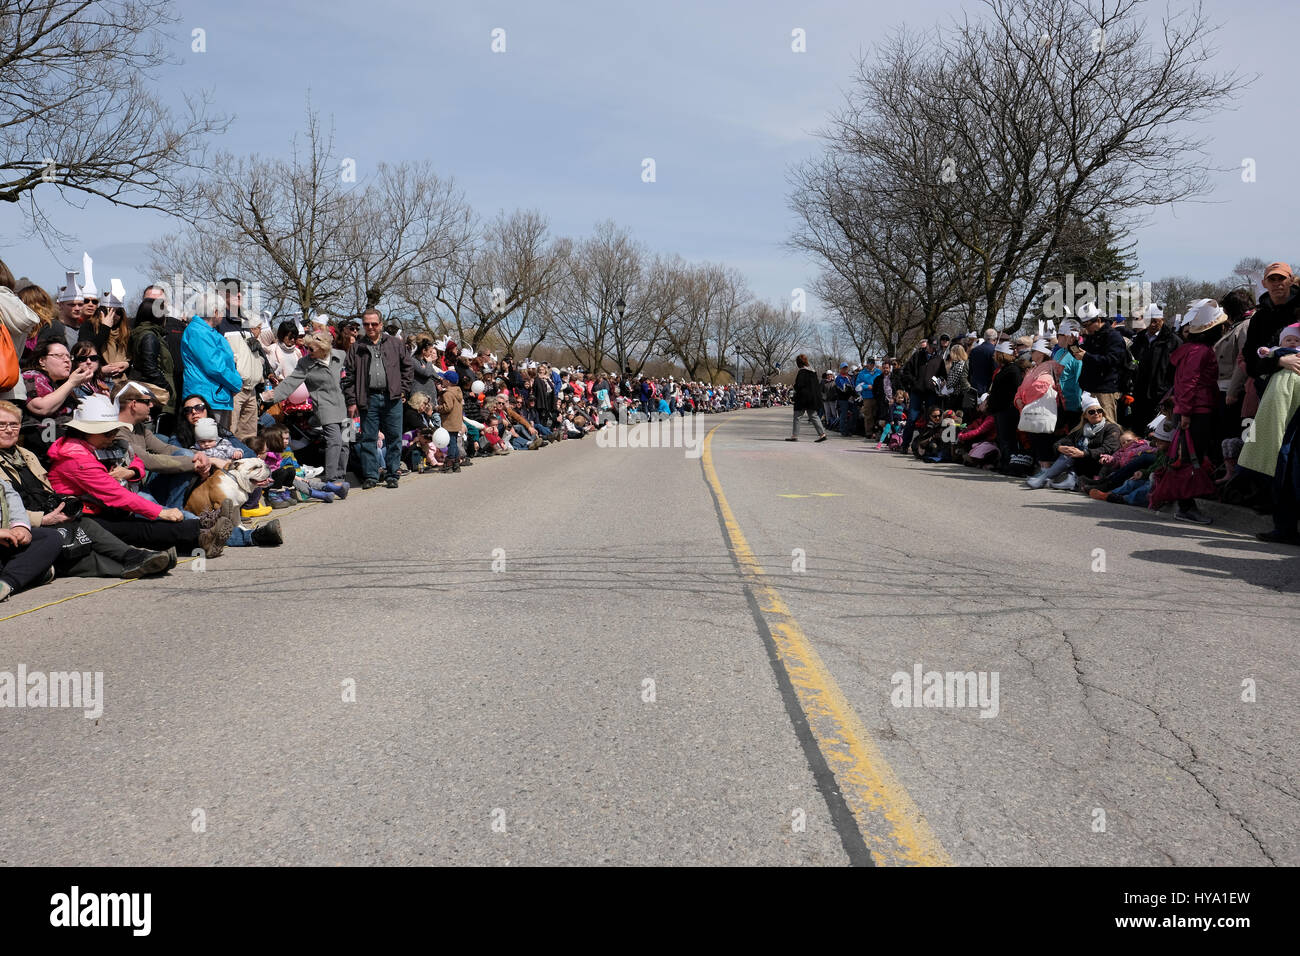 Stratford, Ontario, Canada, 2nd Apr, 2017. Thousands of people gather for the Stratford's Annual Swan Parade, - Stock Image